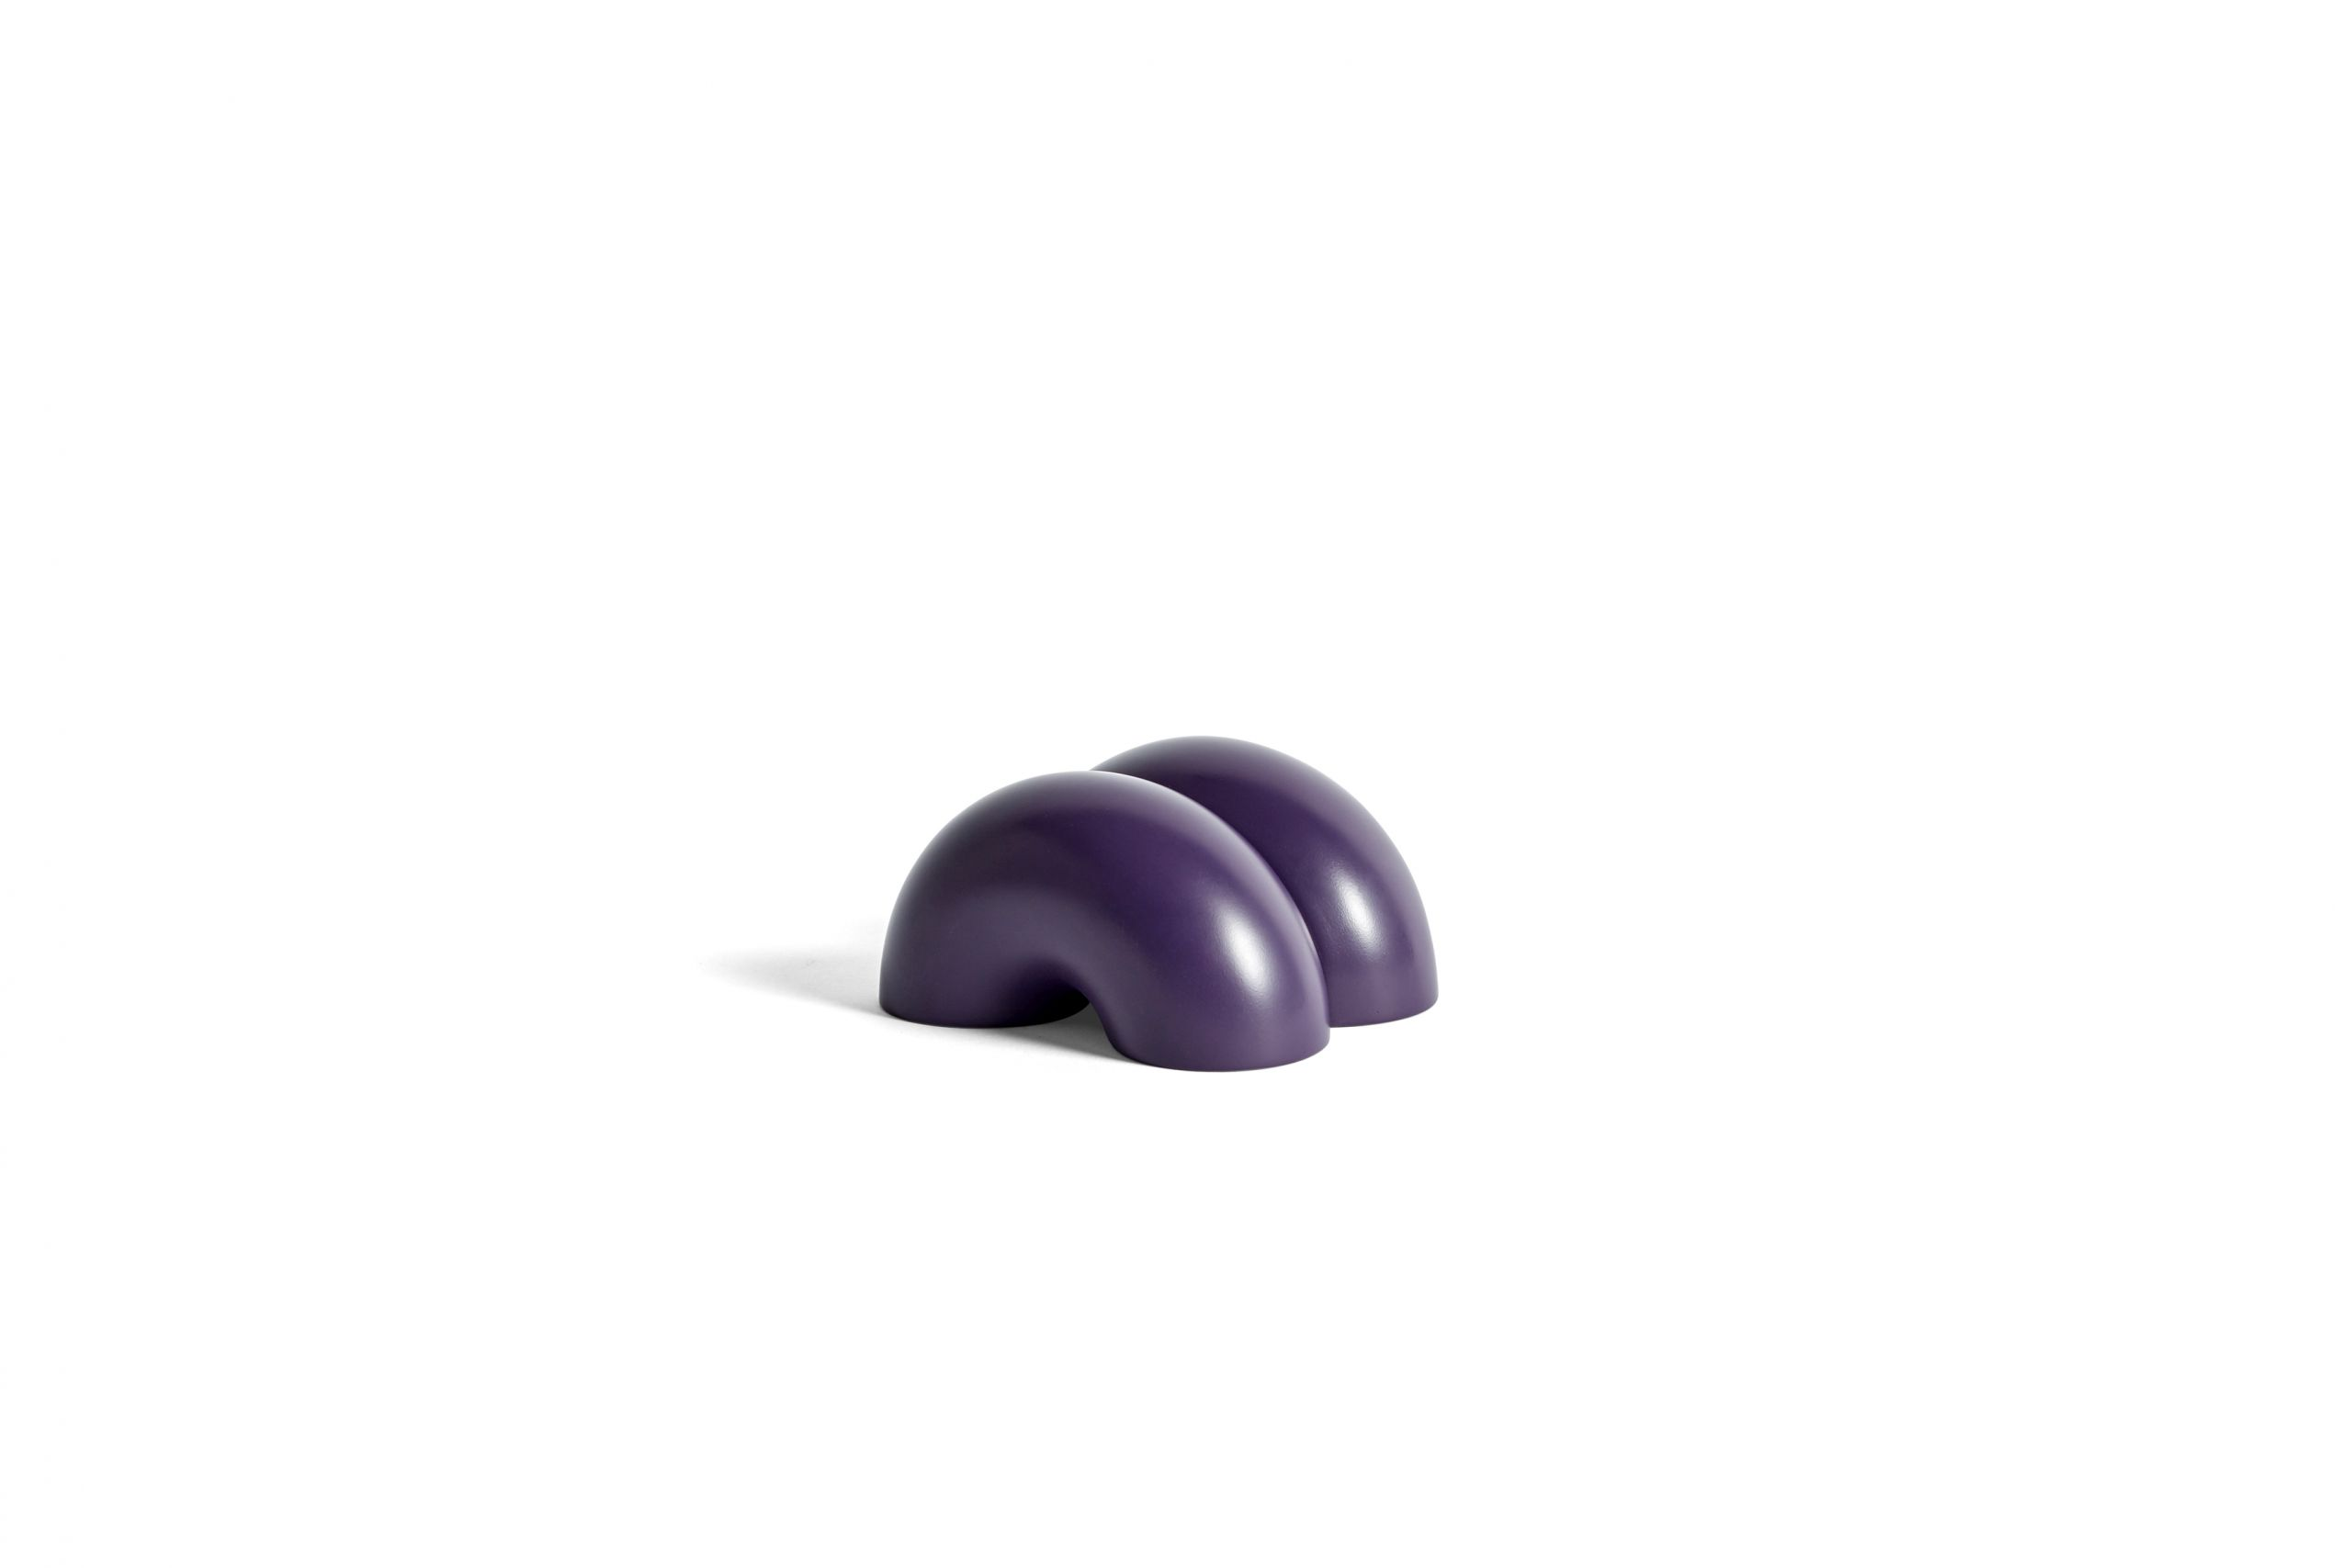 W&S doorstop double donut purple